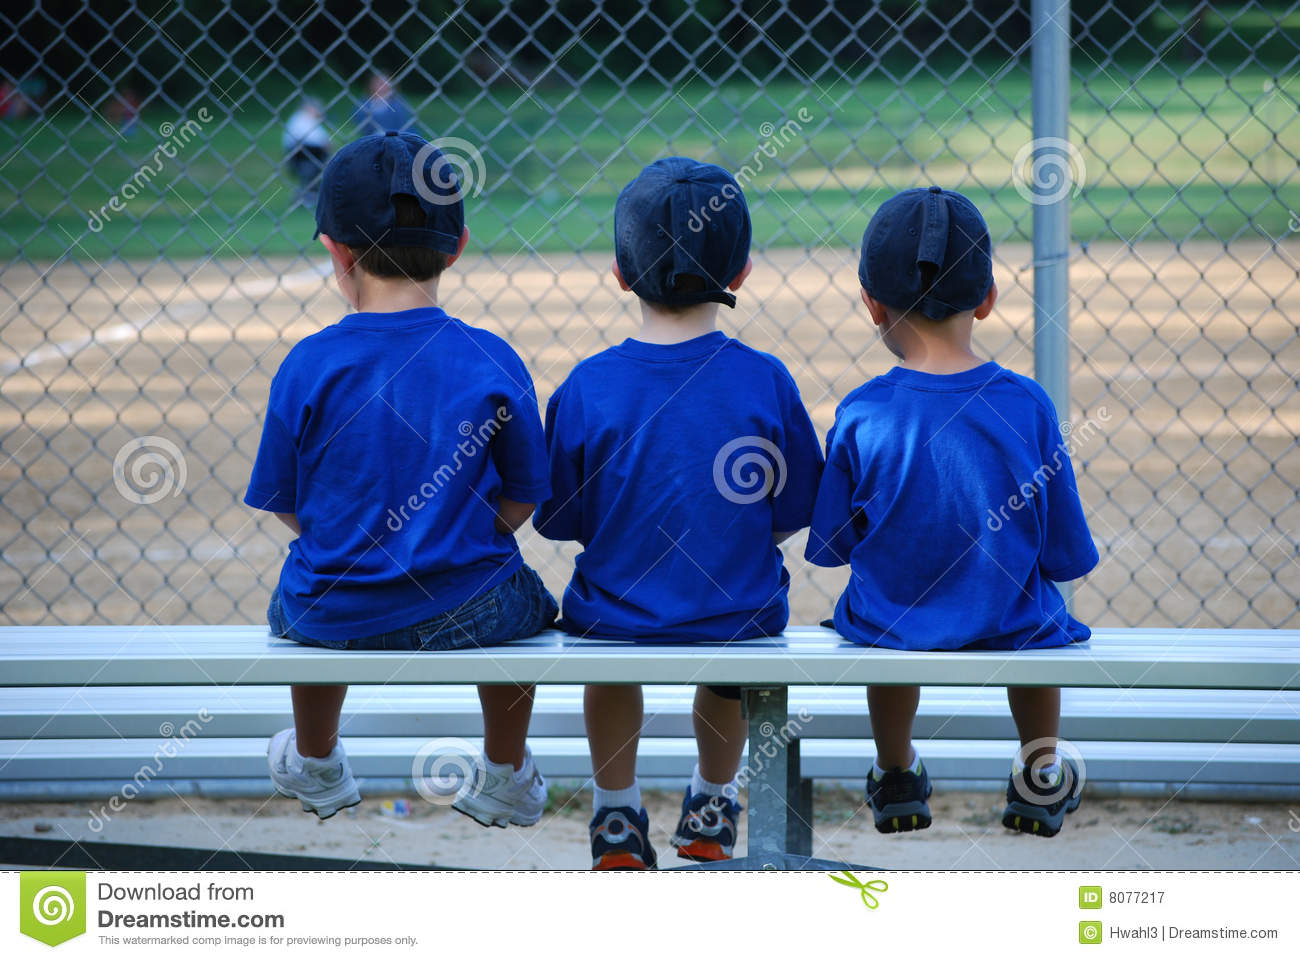 wood in royalty bench image dugout photo stock free baseball